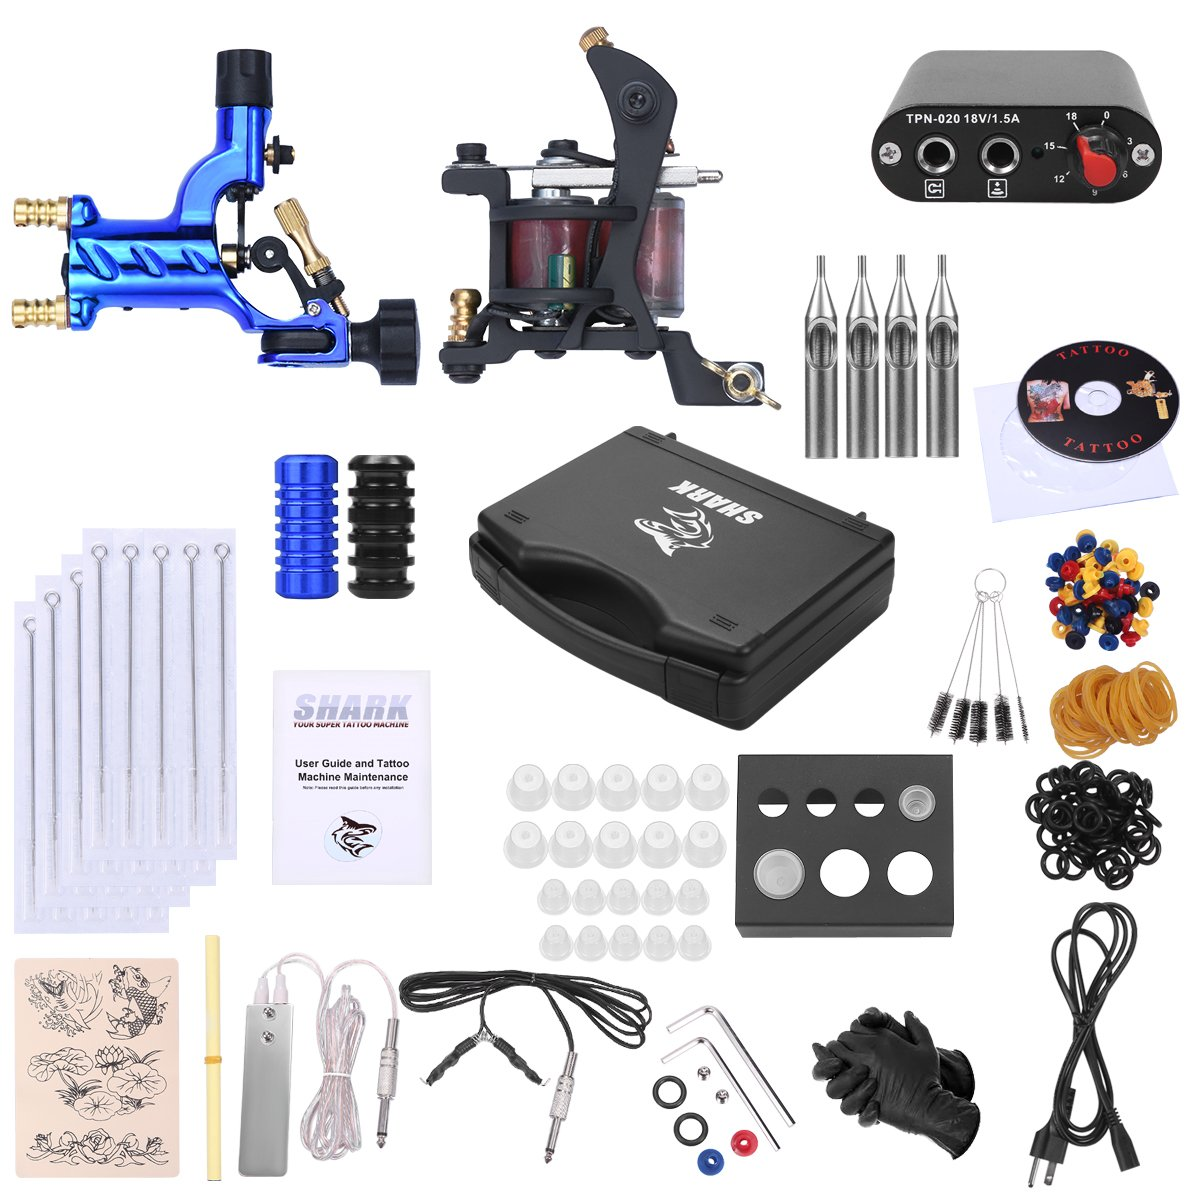 Shark Complete Pro Rotary Tattoo Kit Machines Gun with Plastic Carry Case Power Supply Needles Grips Tips by Shark (Image #1)